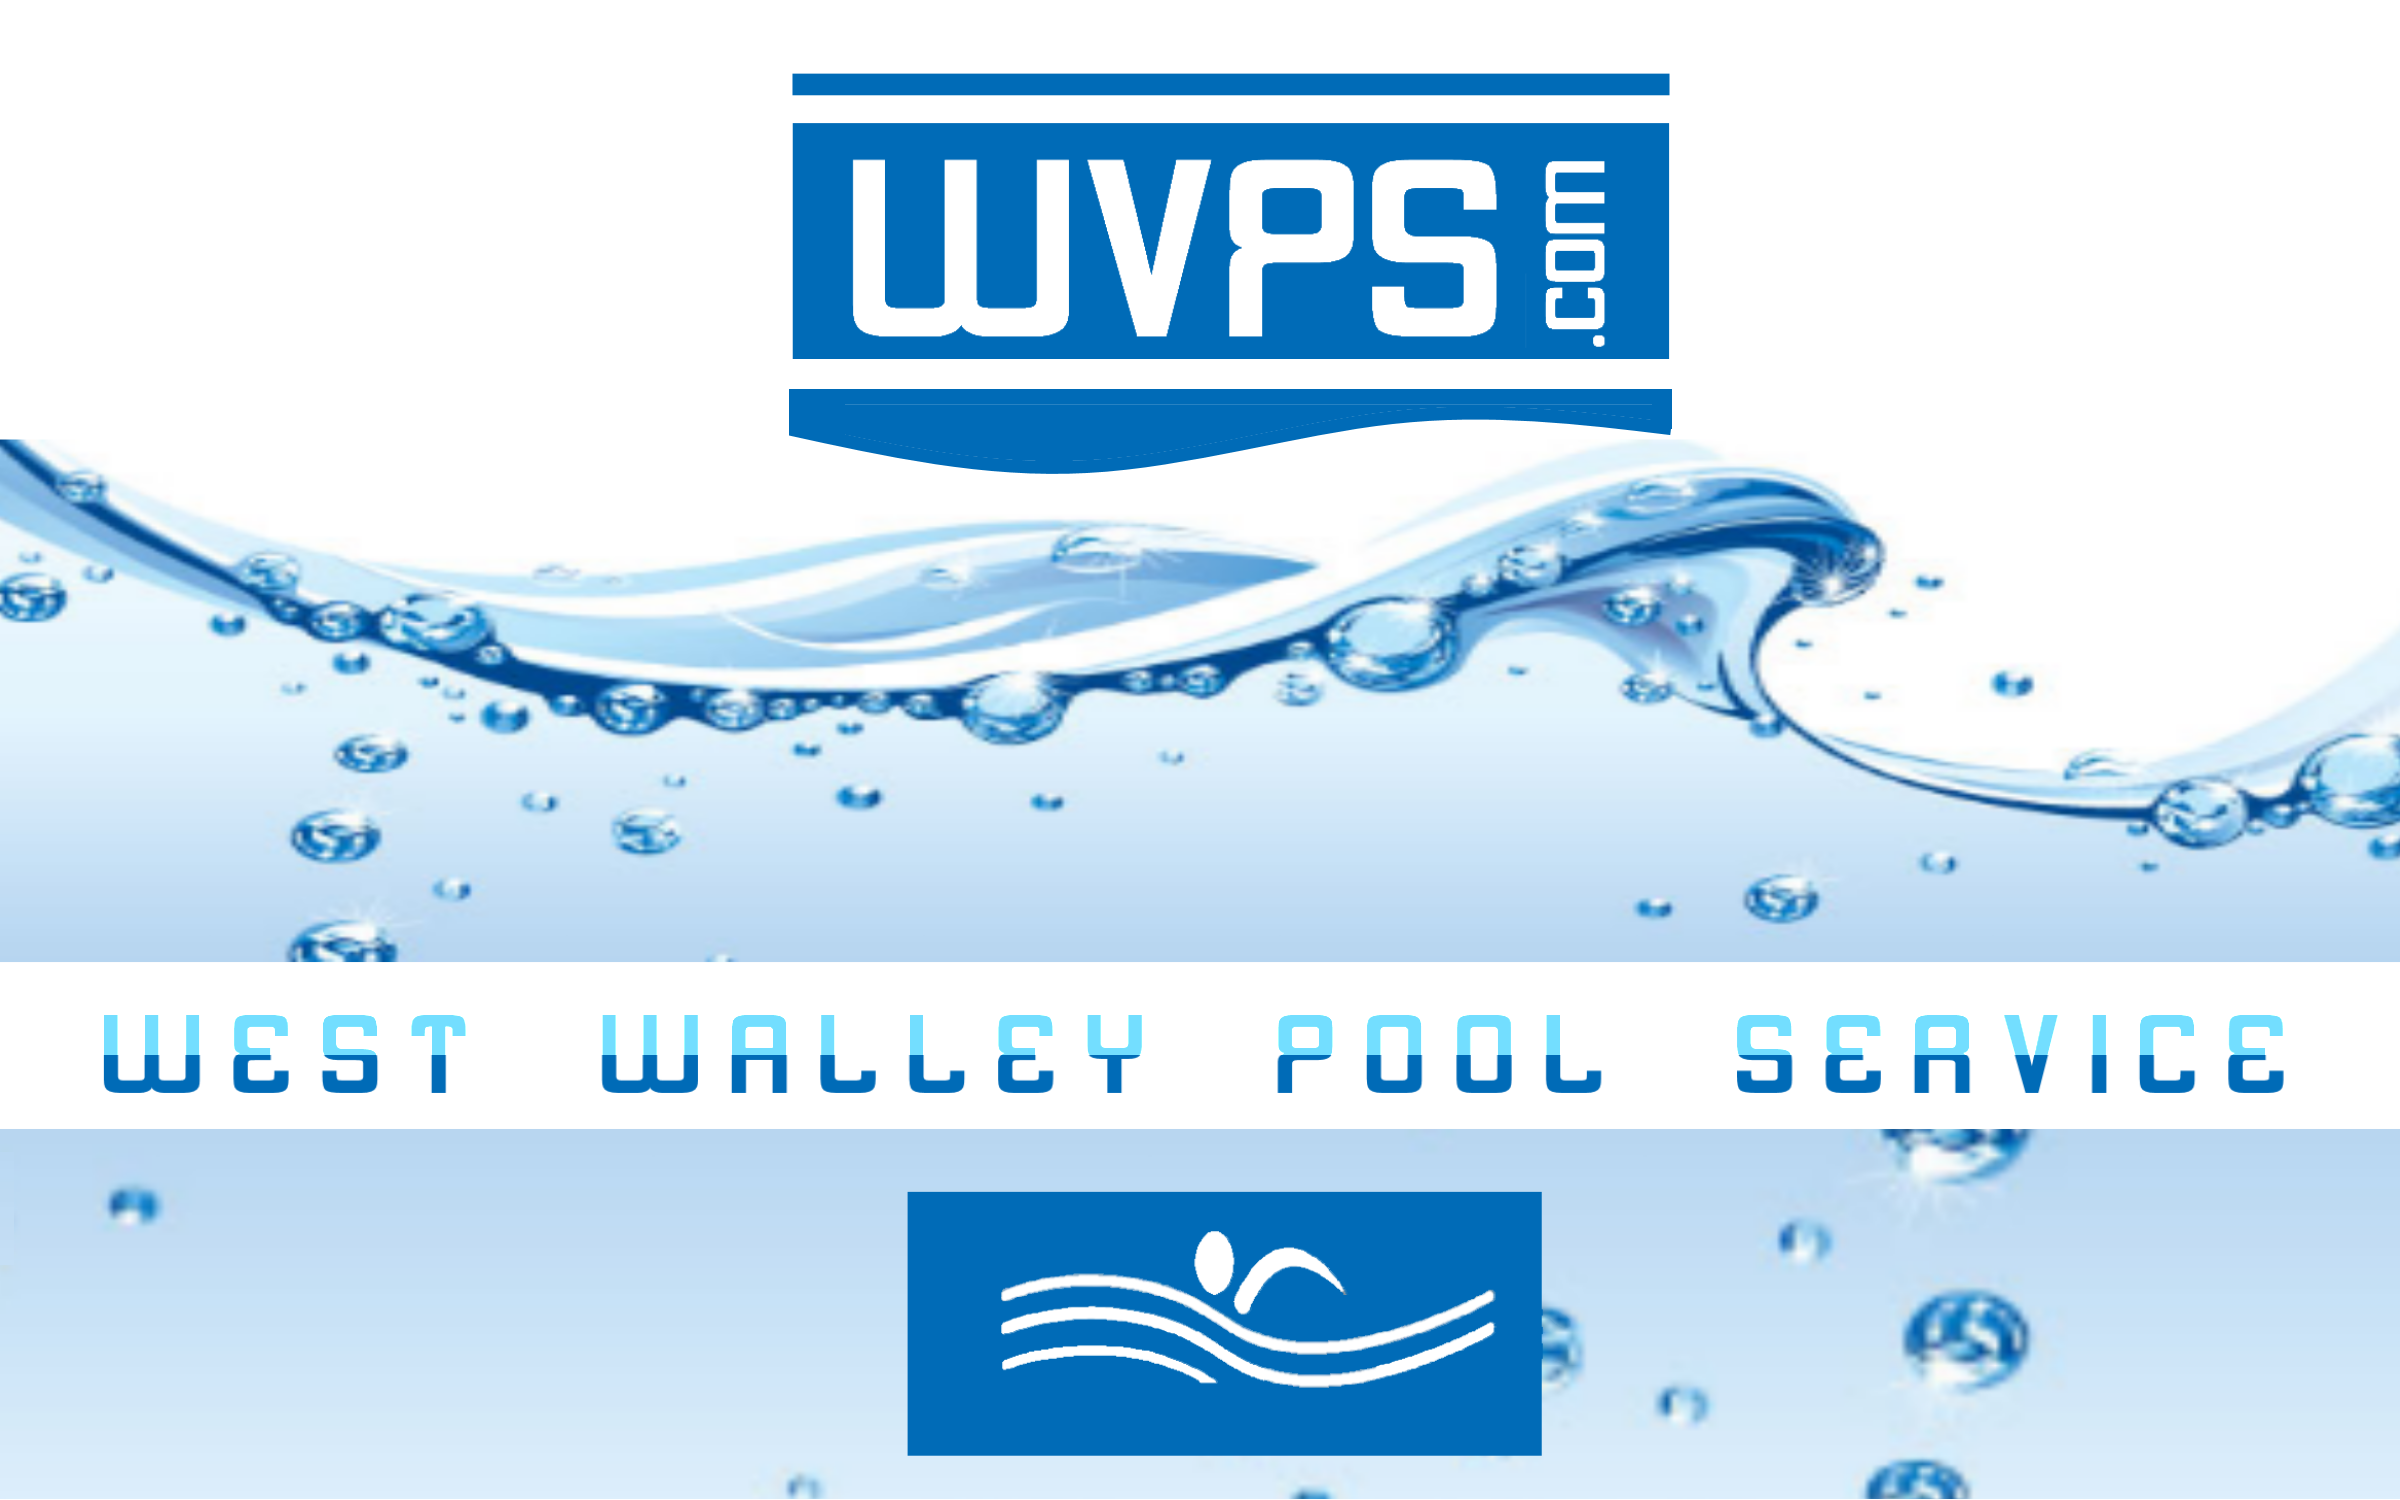 Logo Design by Roberto Bassi - Entry No. 108 in the Logo Design Contest Clever Logo Design for West Valley Pool Service.